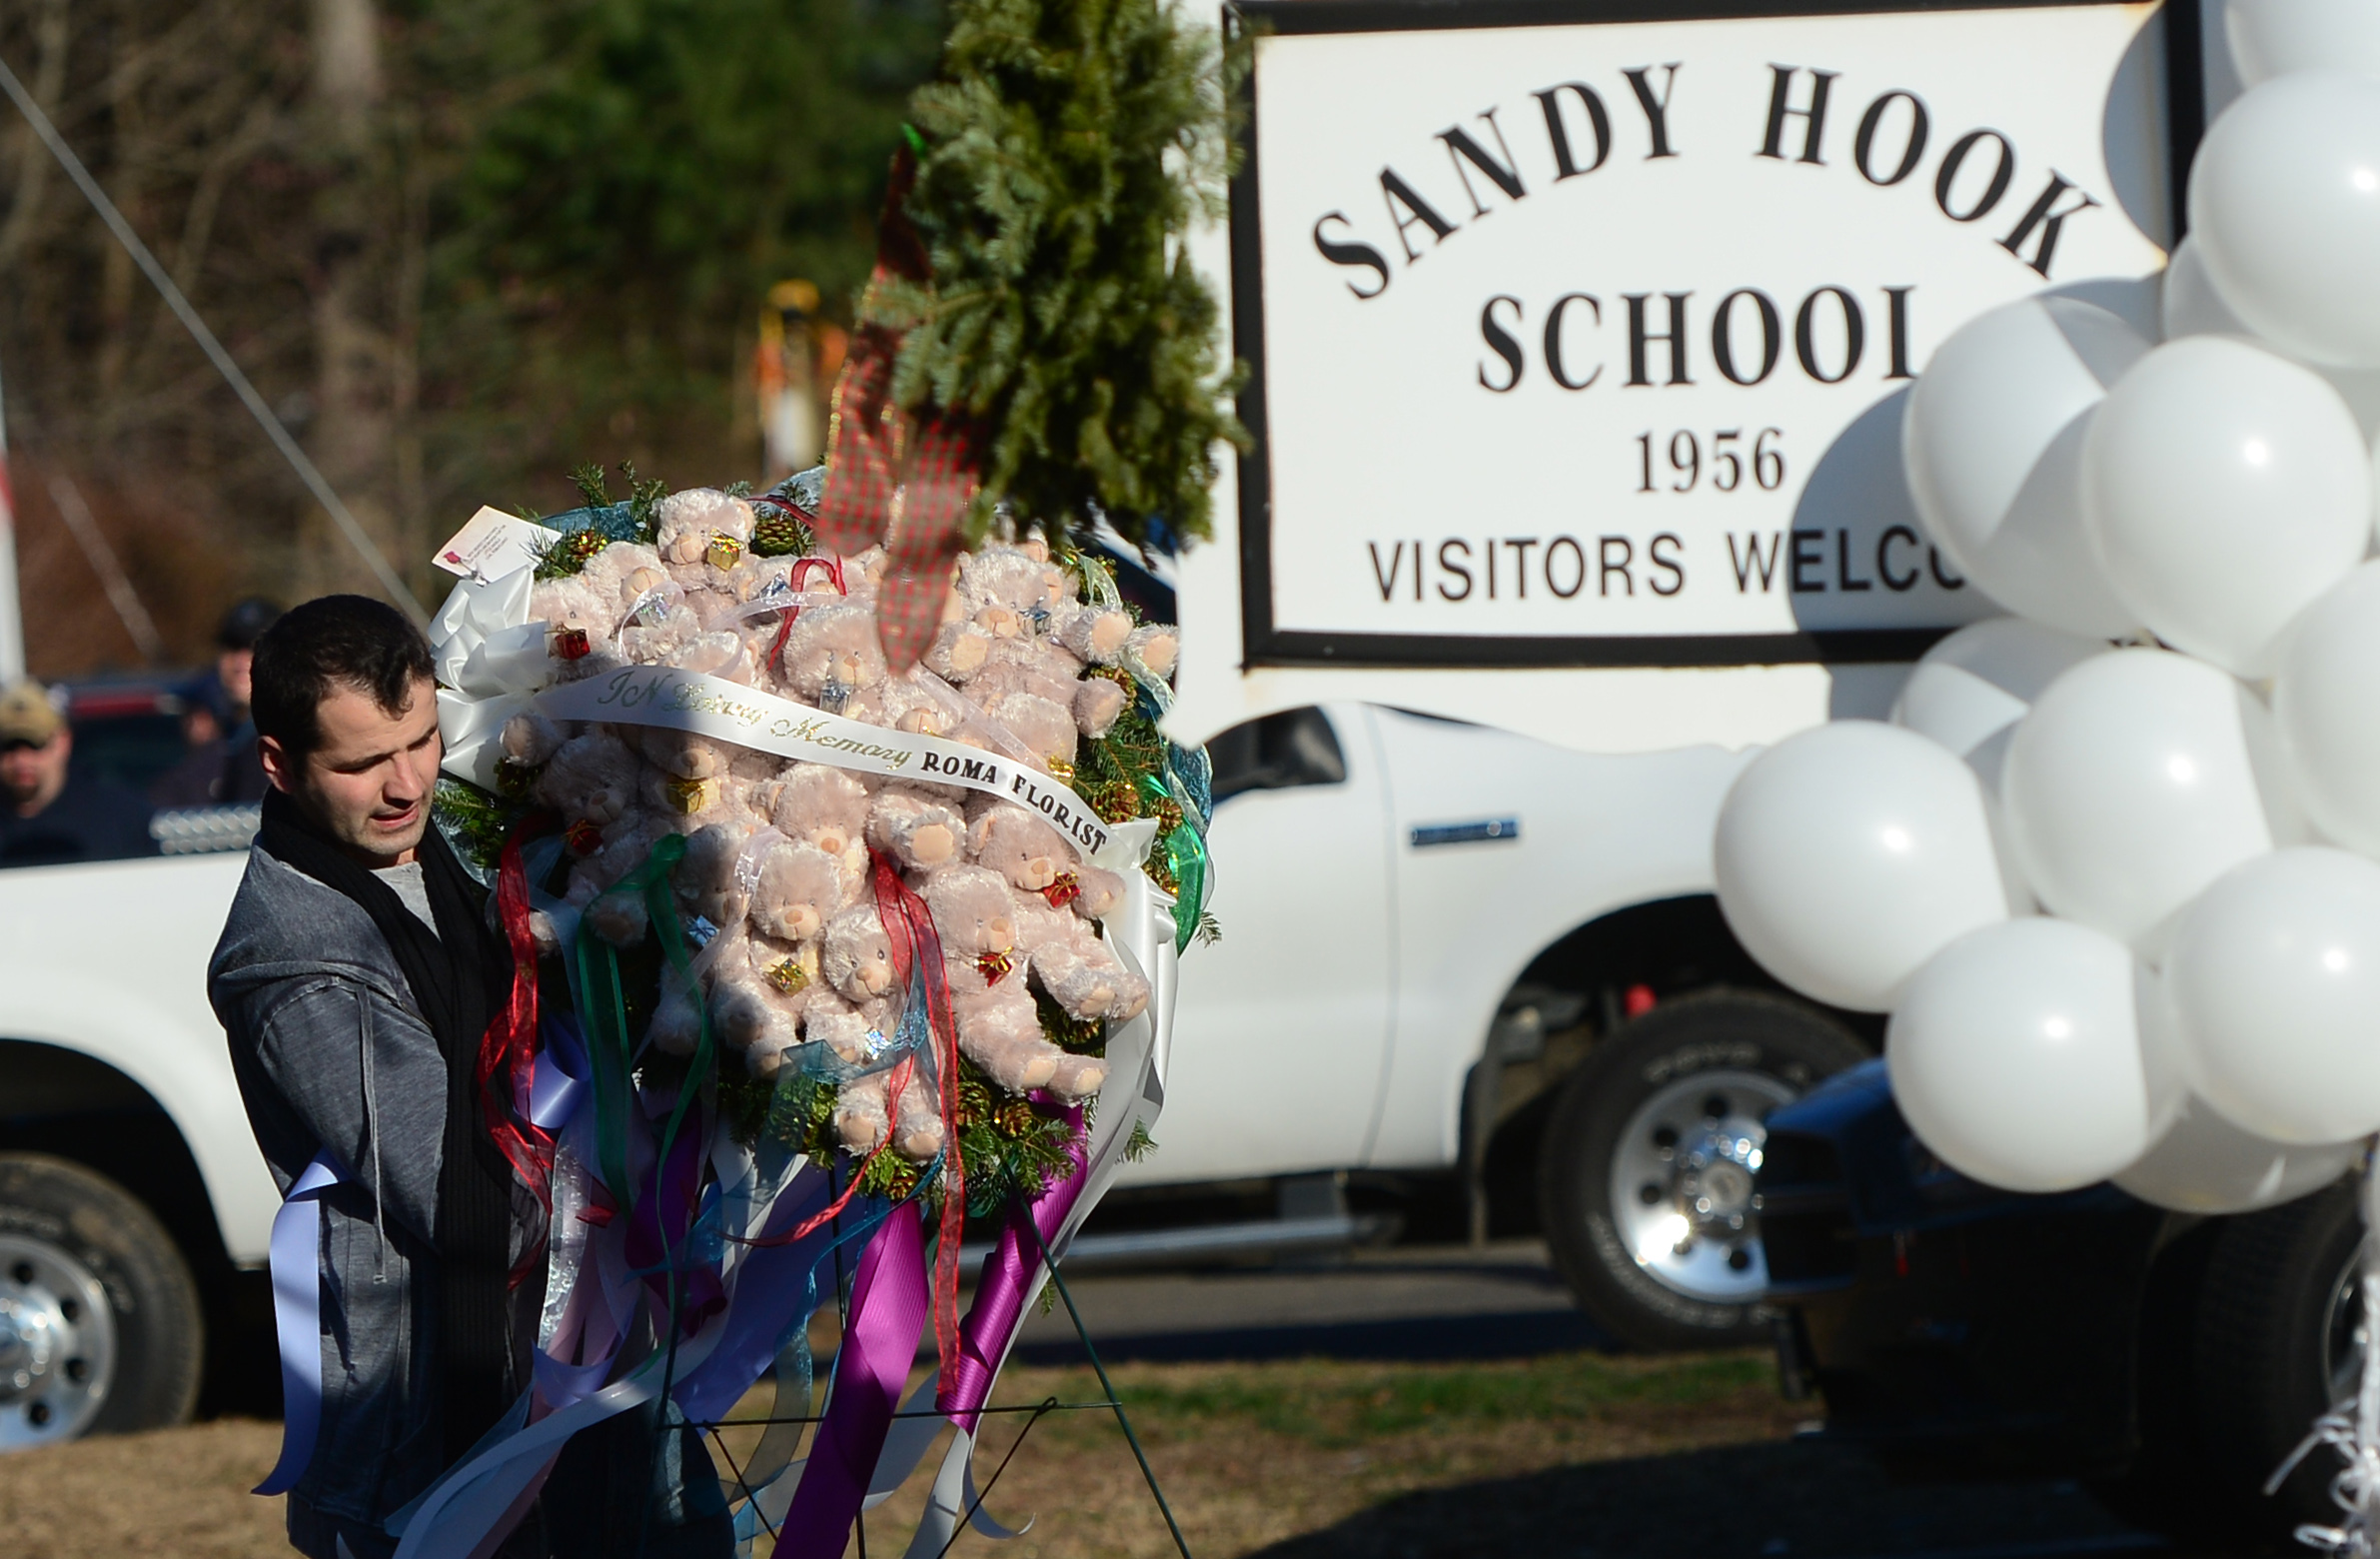 A man pays tribute to the victims of an elementary school shooting in Newtown, Connecticut, on December 15, 2012.